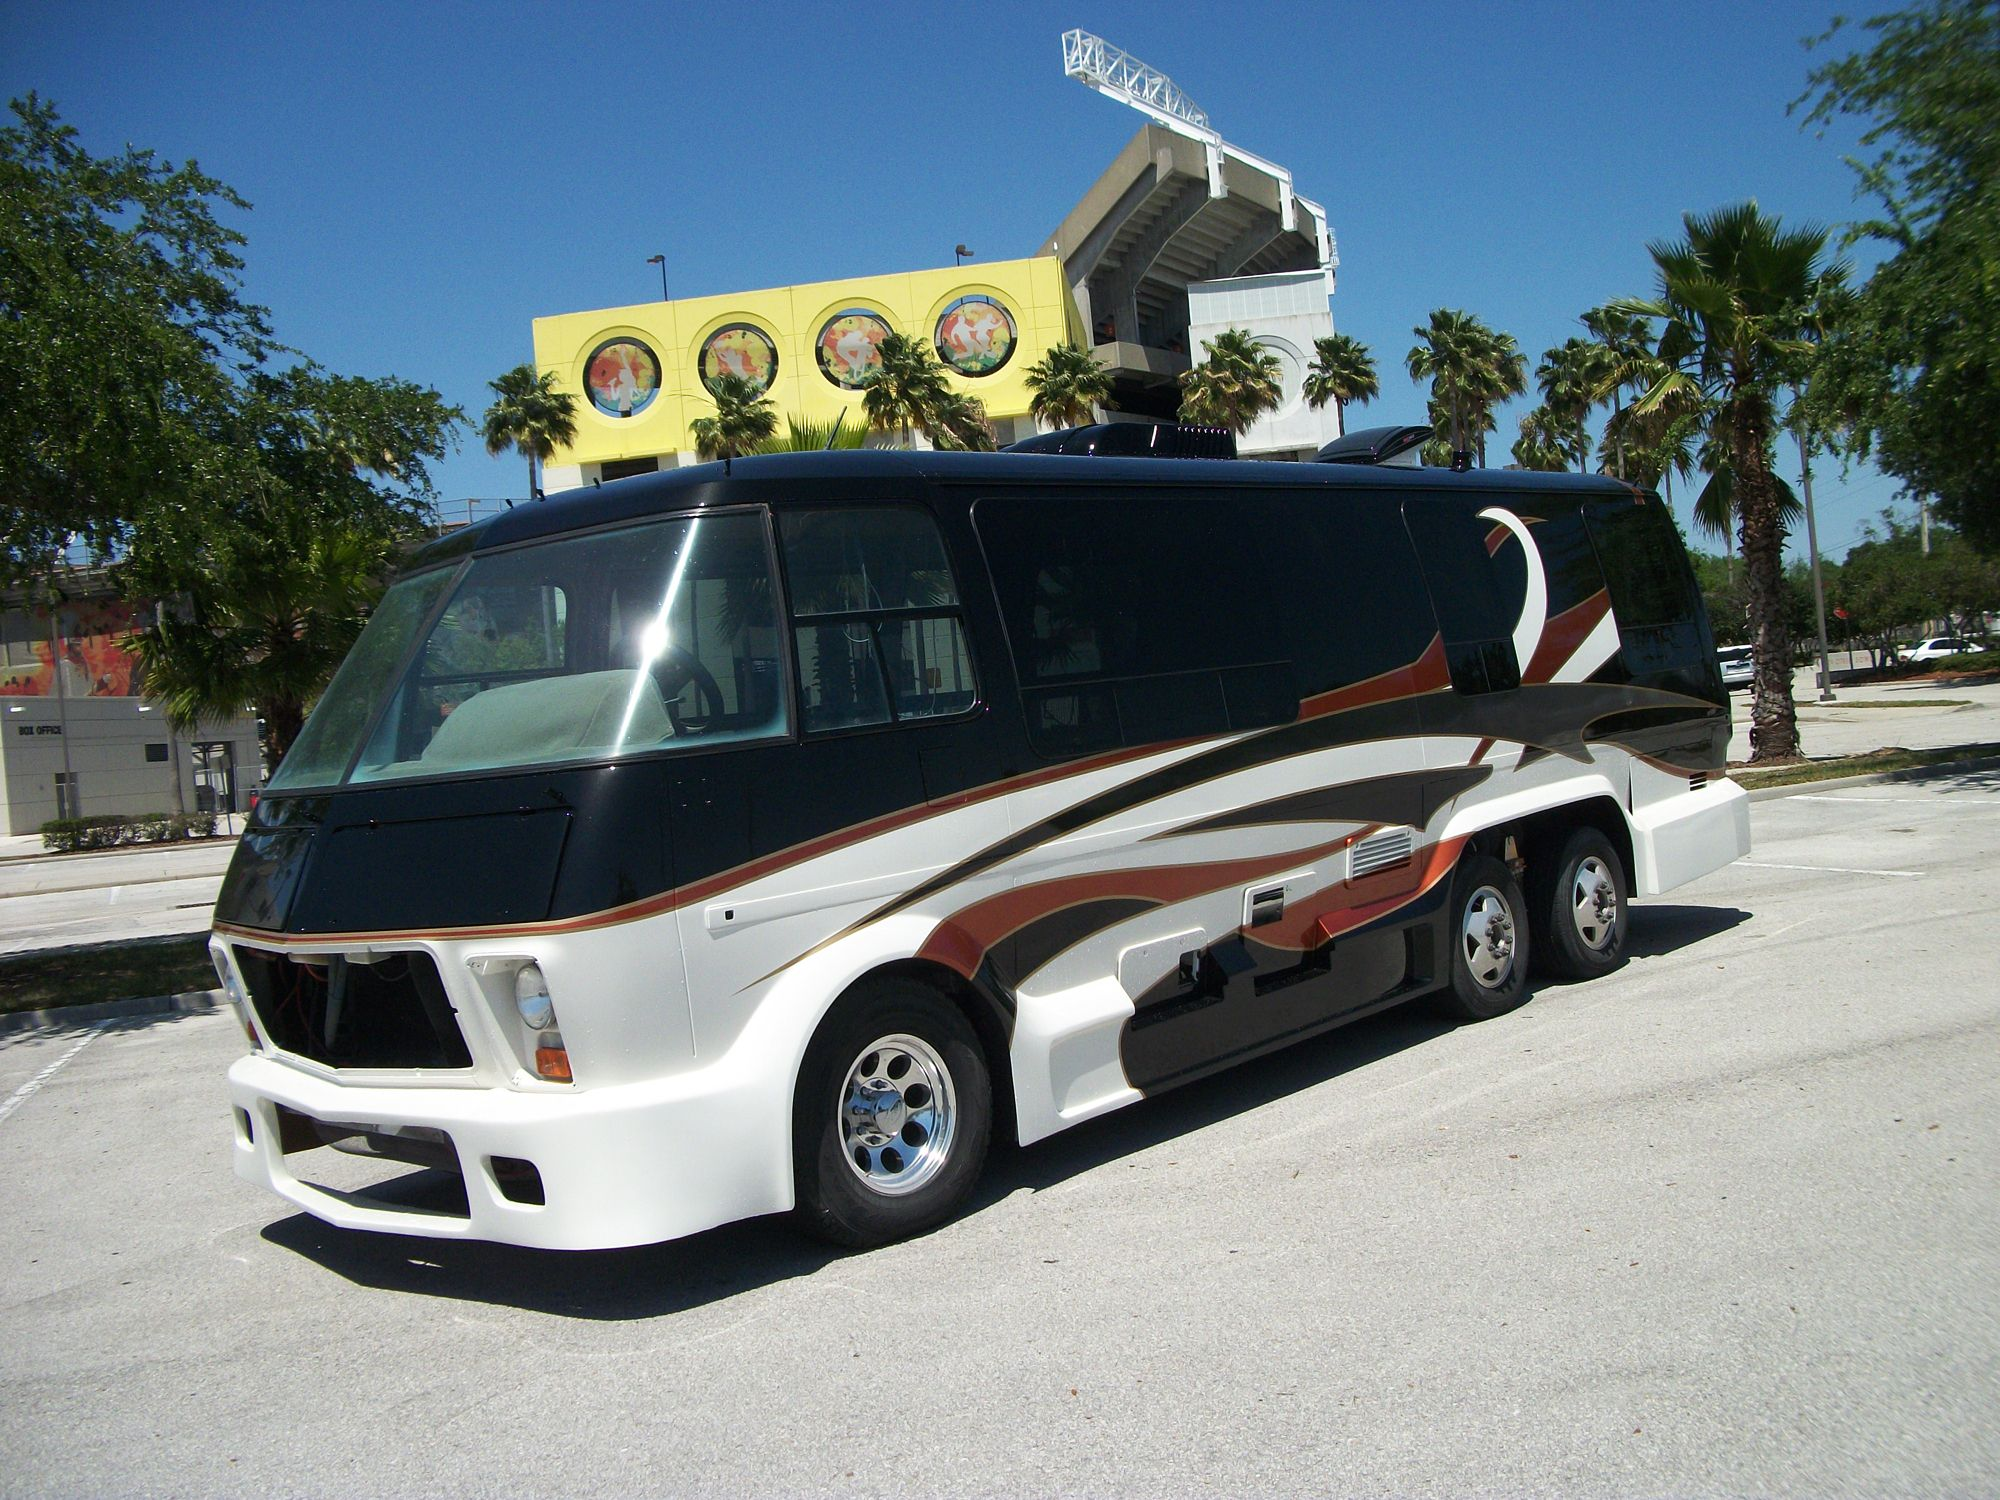 A C Gmc Motorhome Restoration Parts - Year of Clean Water